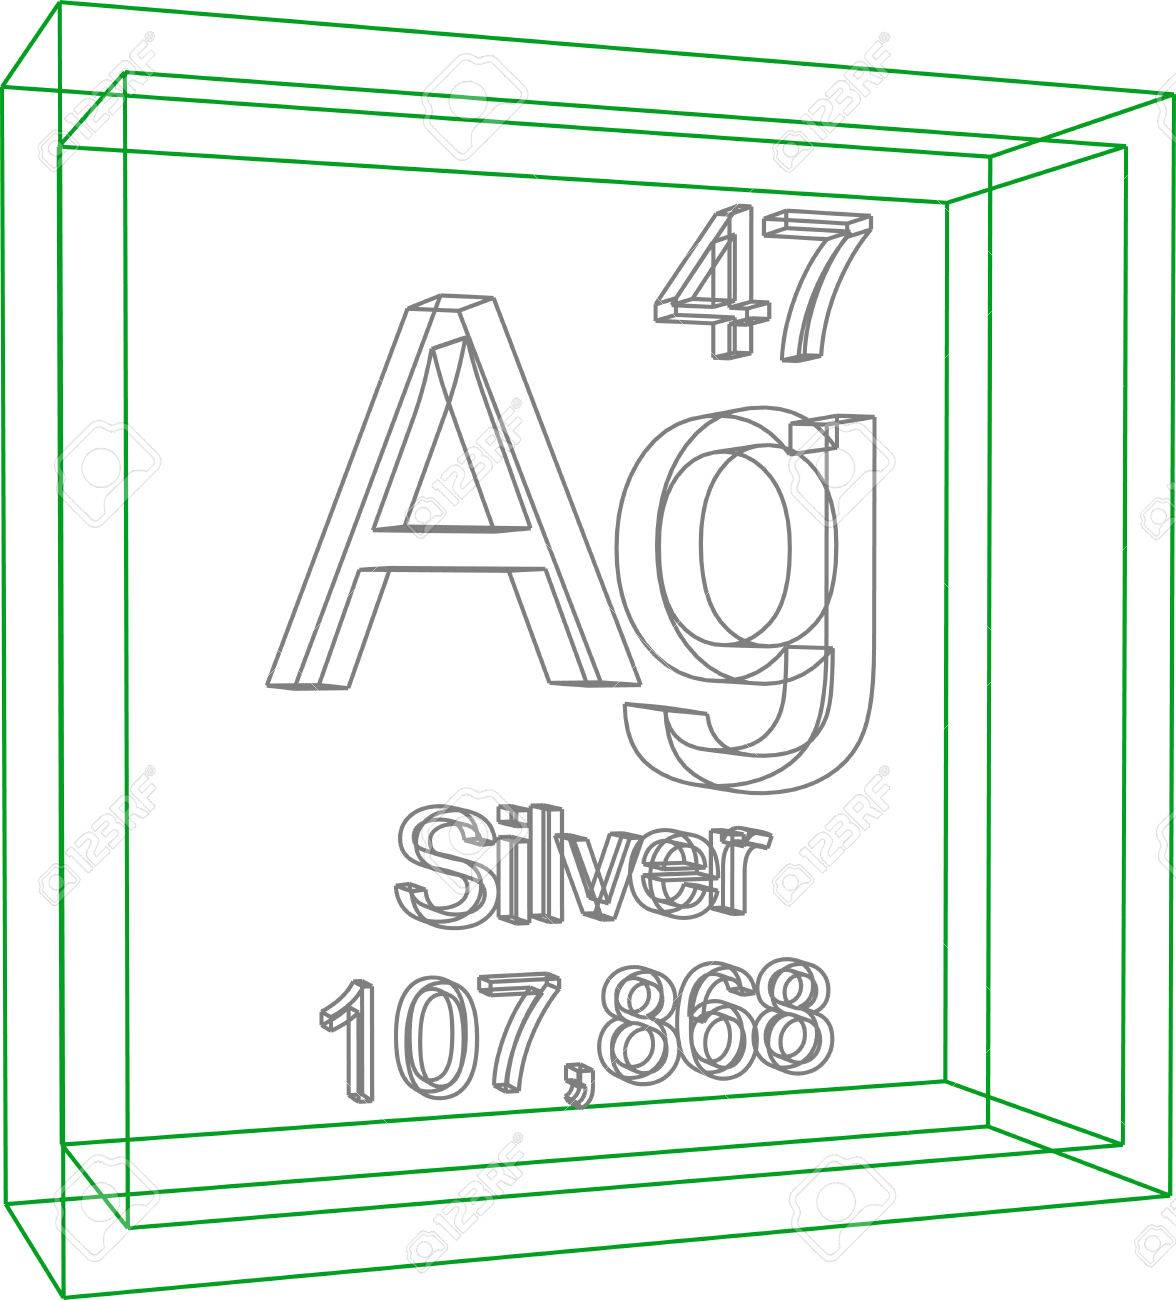 Periodic table of elements silver royalty free cliparts vectors periodic table of elements silver stock vector 57970372 urtaz